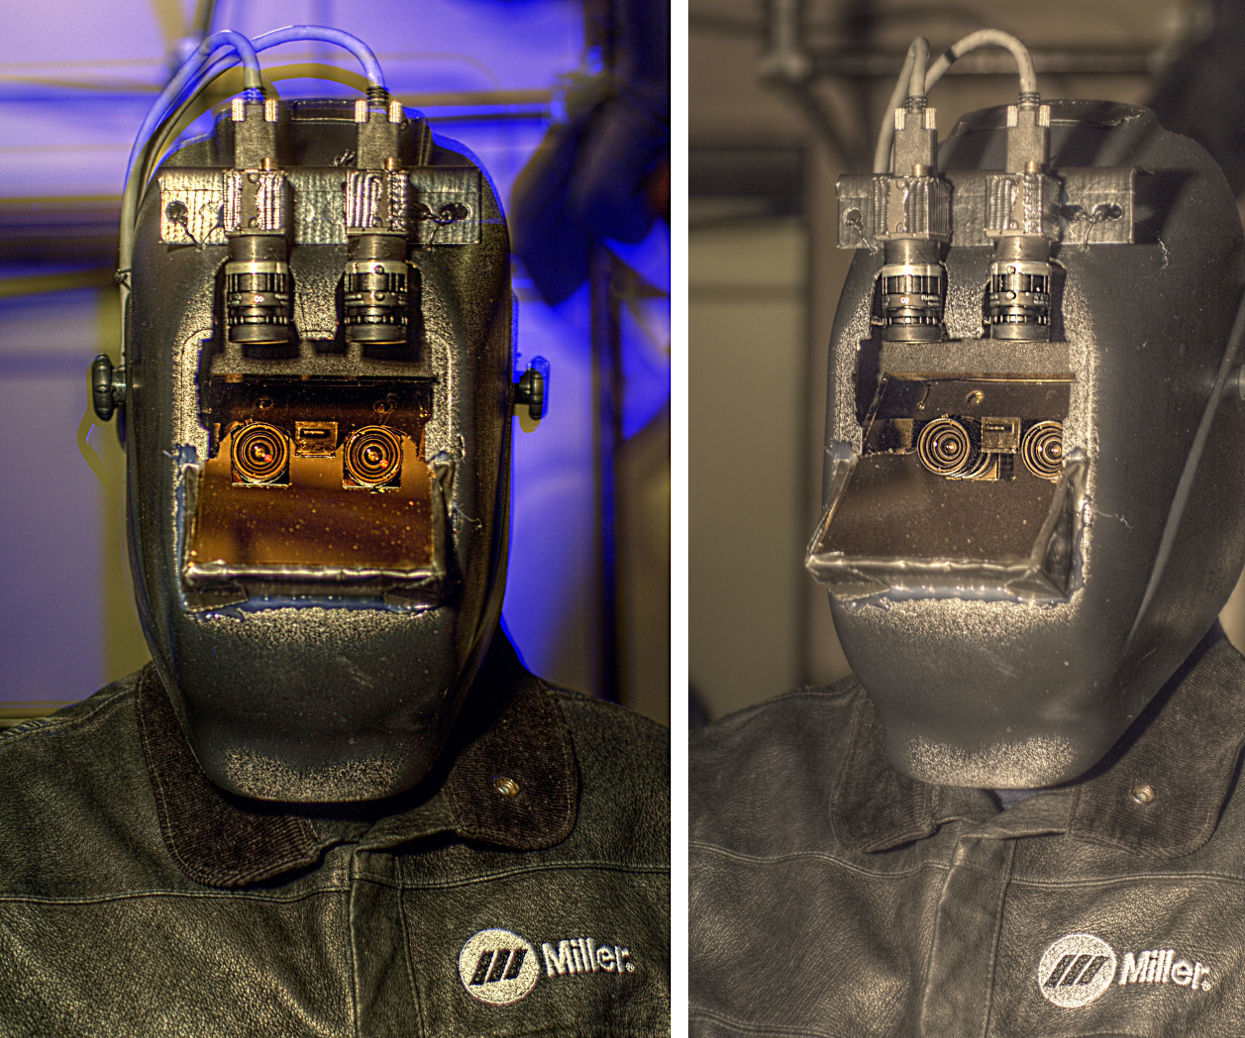 HDR EyeGlass: From Cyborg Welding Helmets to Wearable